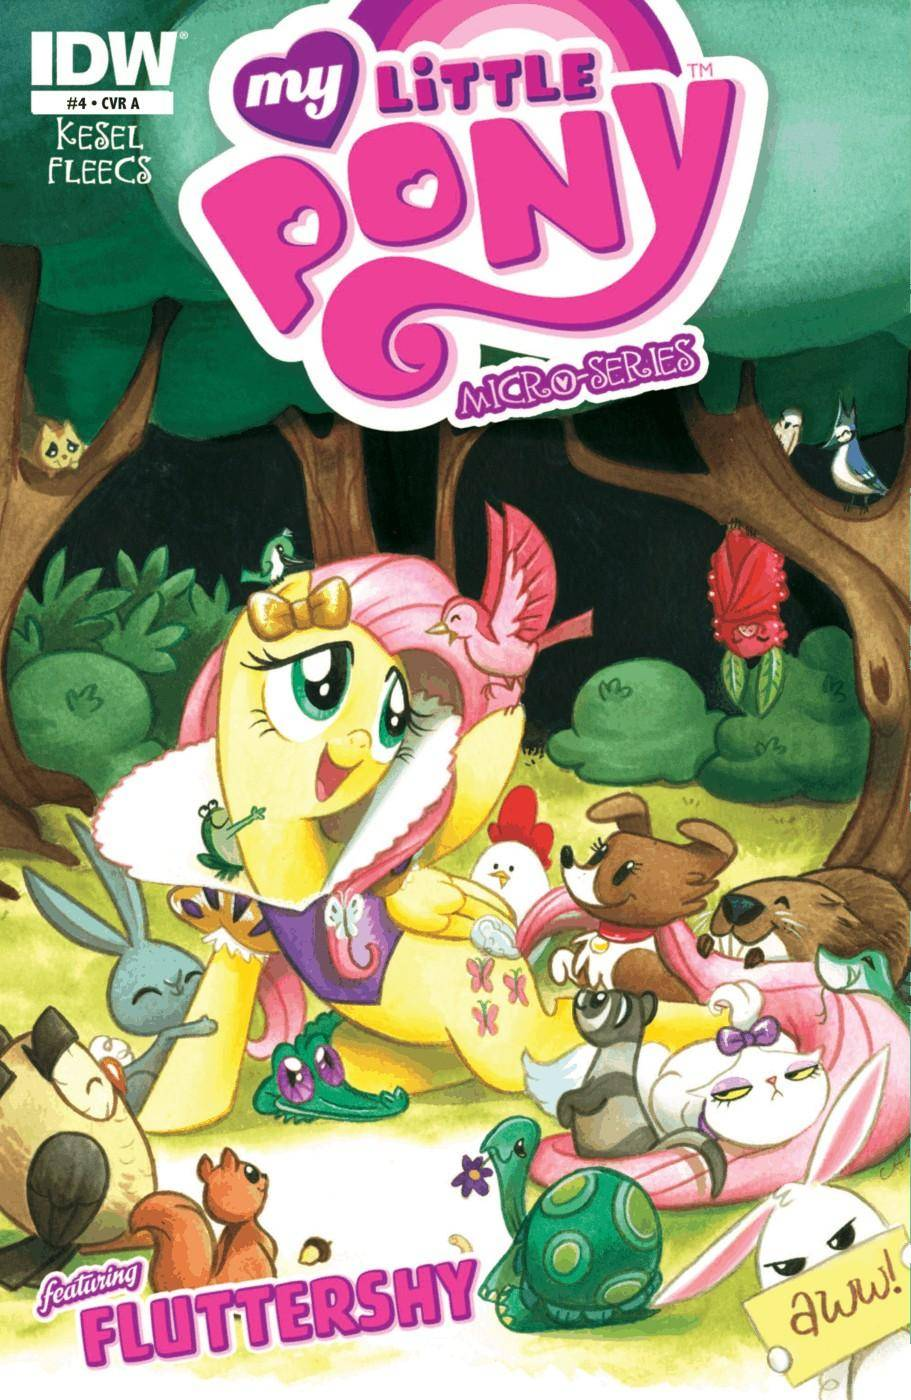 My Little Pony - Micro Series 004 Fluttershy 2013 2 covers digital